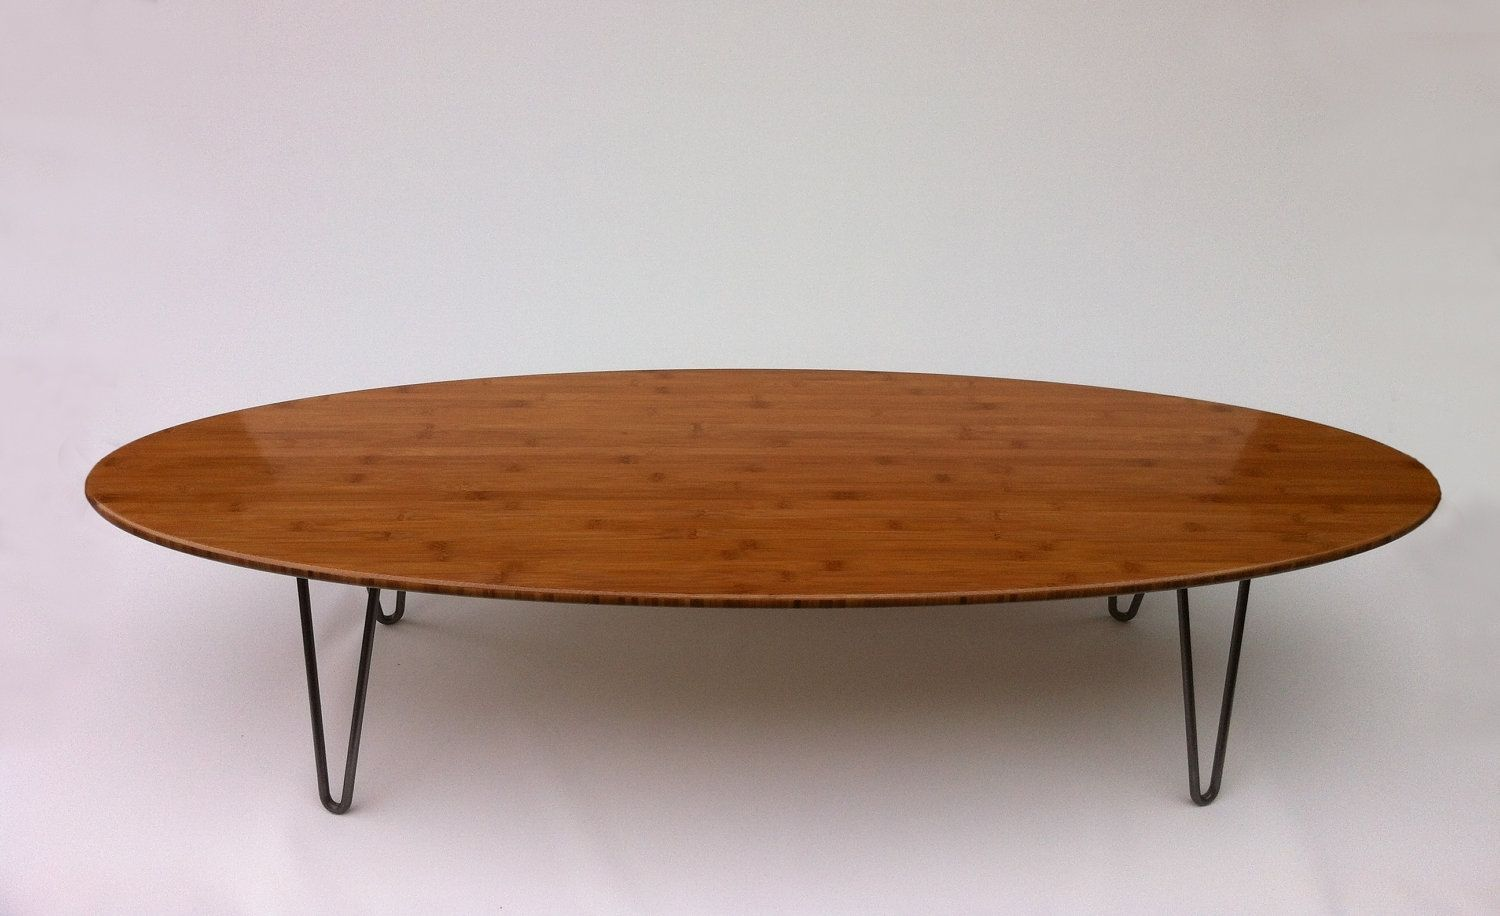 Buy A Custom 66 Surf Board Elliptical Mid Century Modern Coffee Table Hairpin Legs In